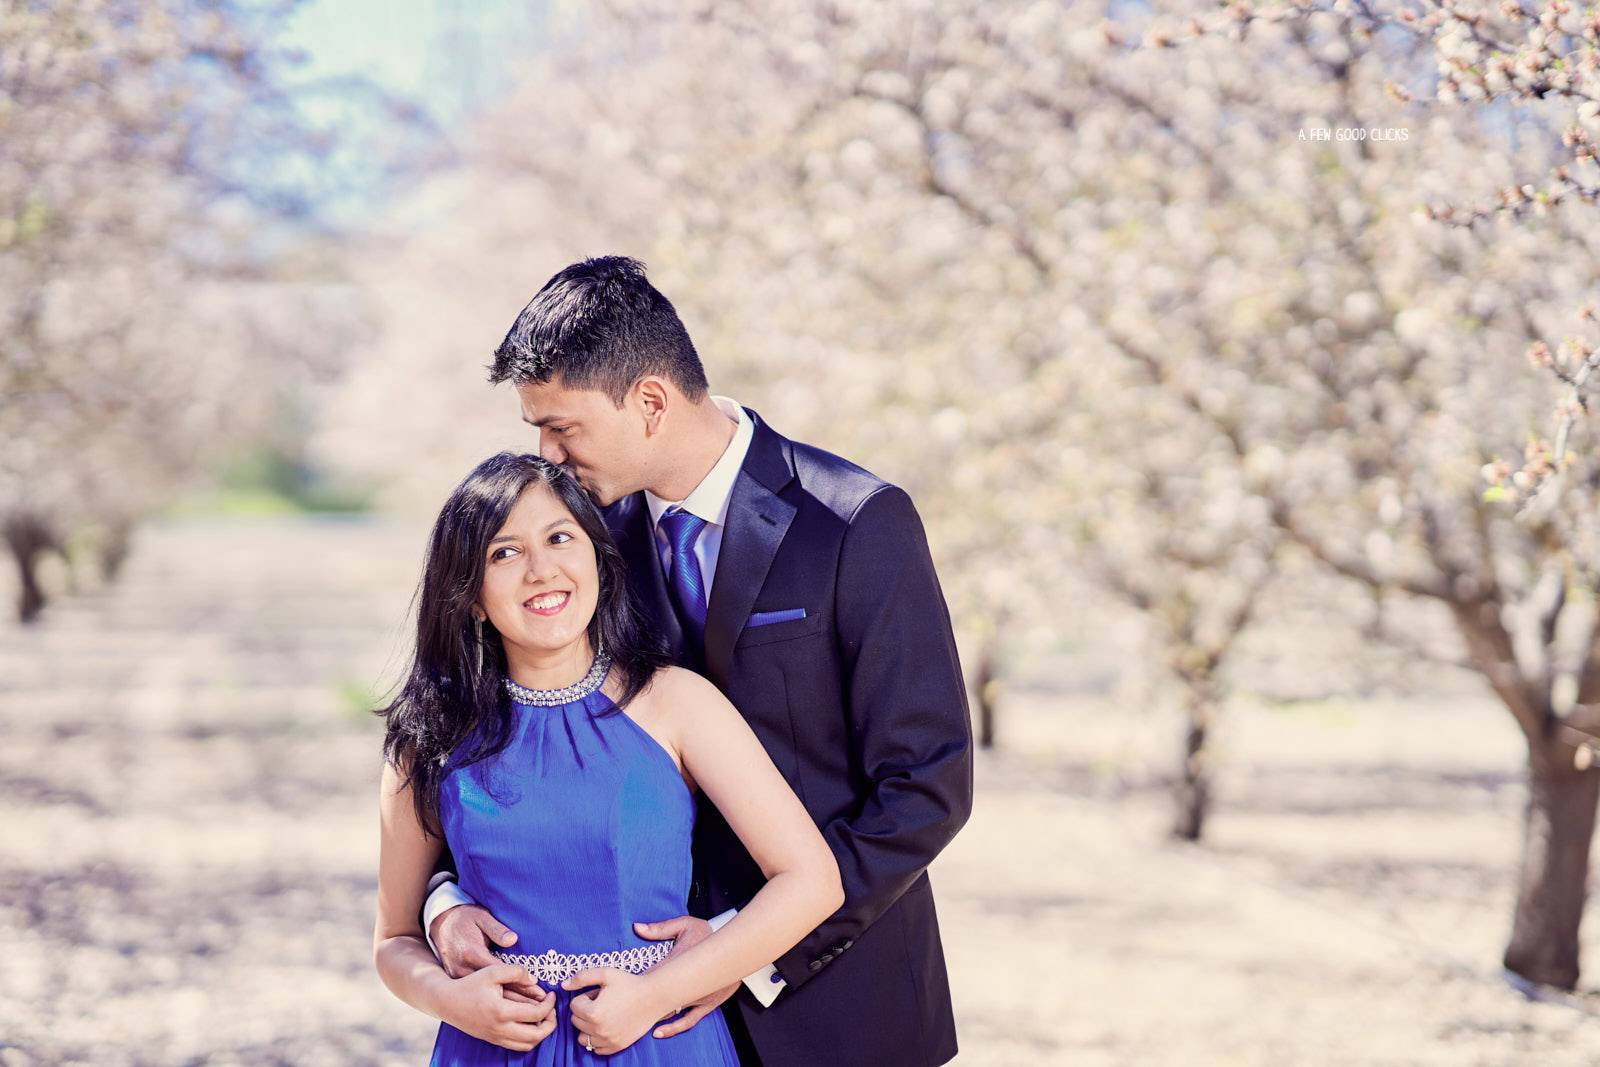 couple-poses-engagement-photoshoot-almond-farms-east-bay-area